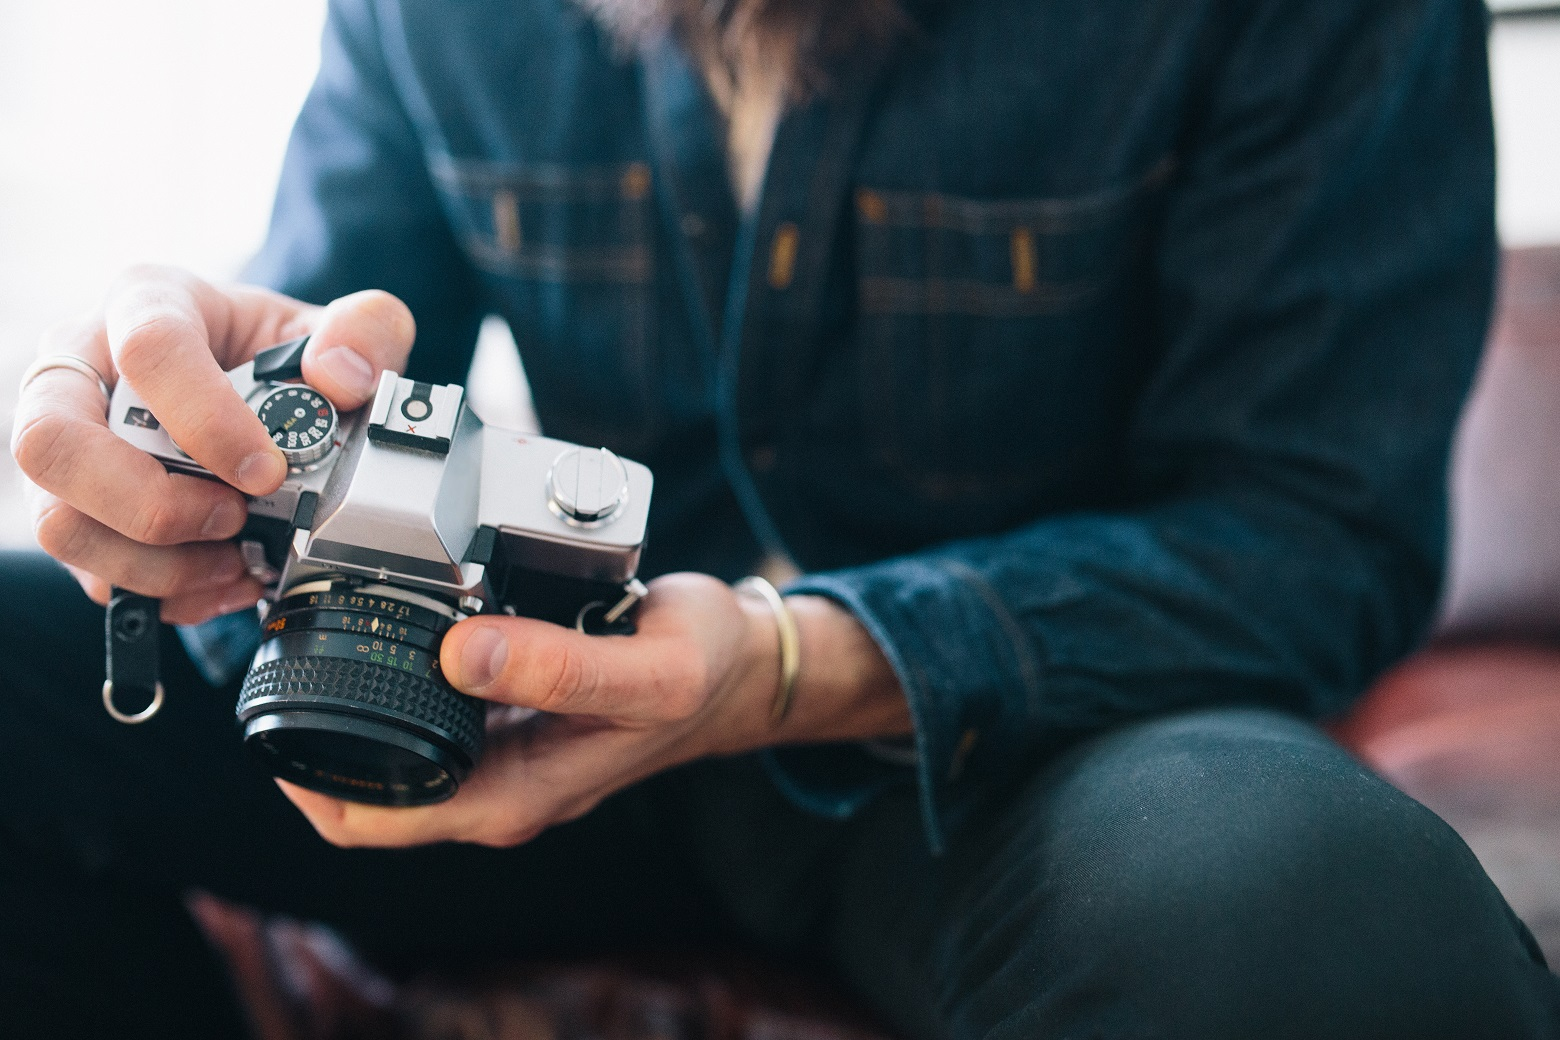 How to Get Free Publicity as a Photographer